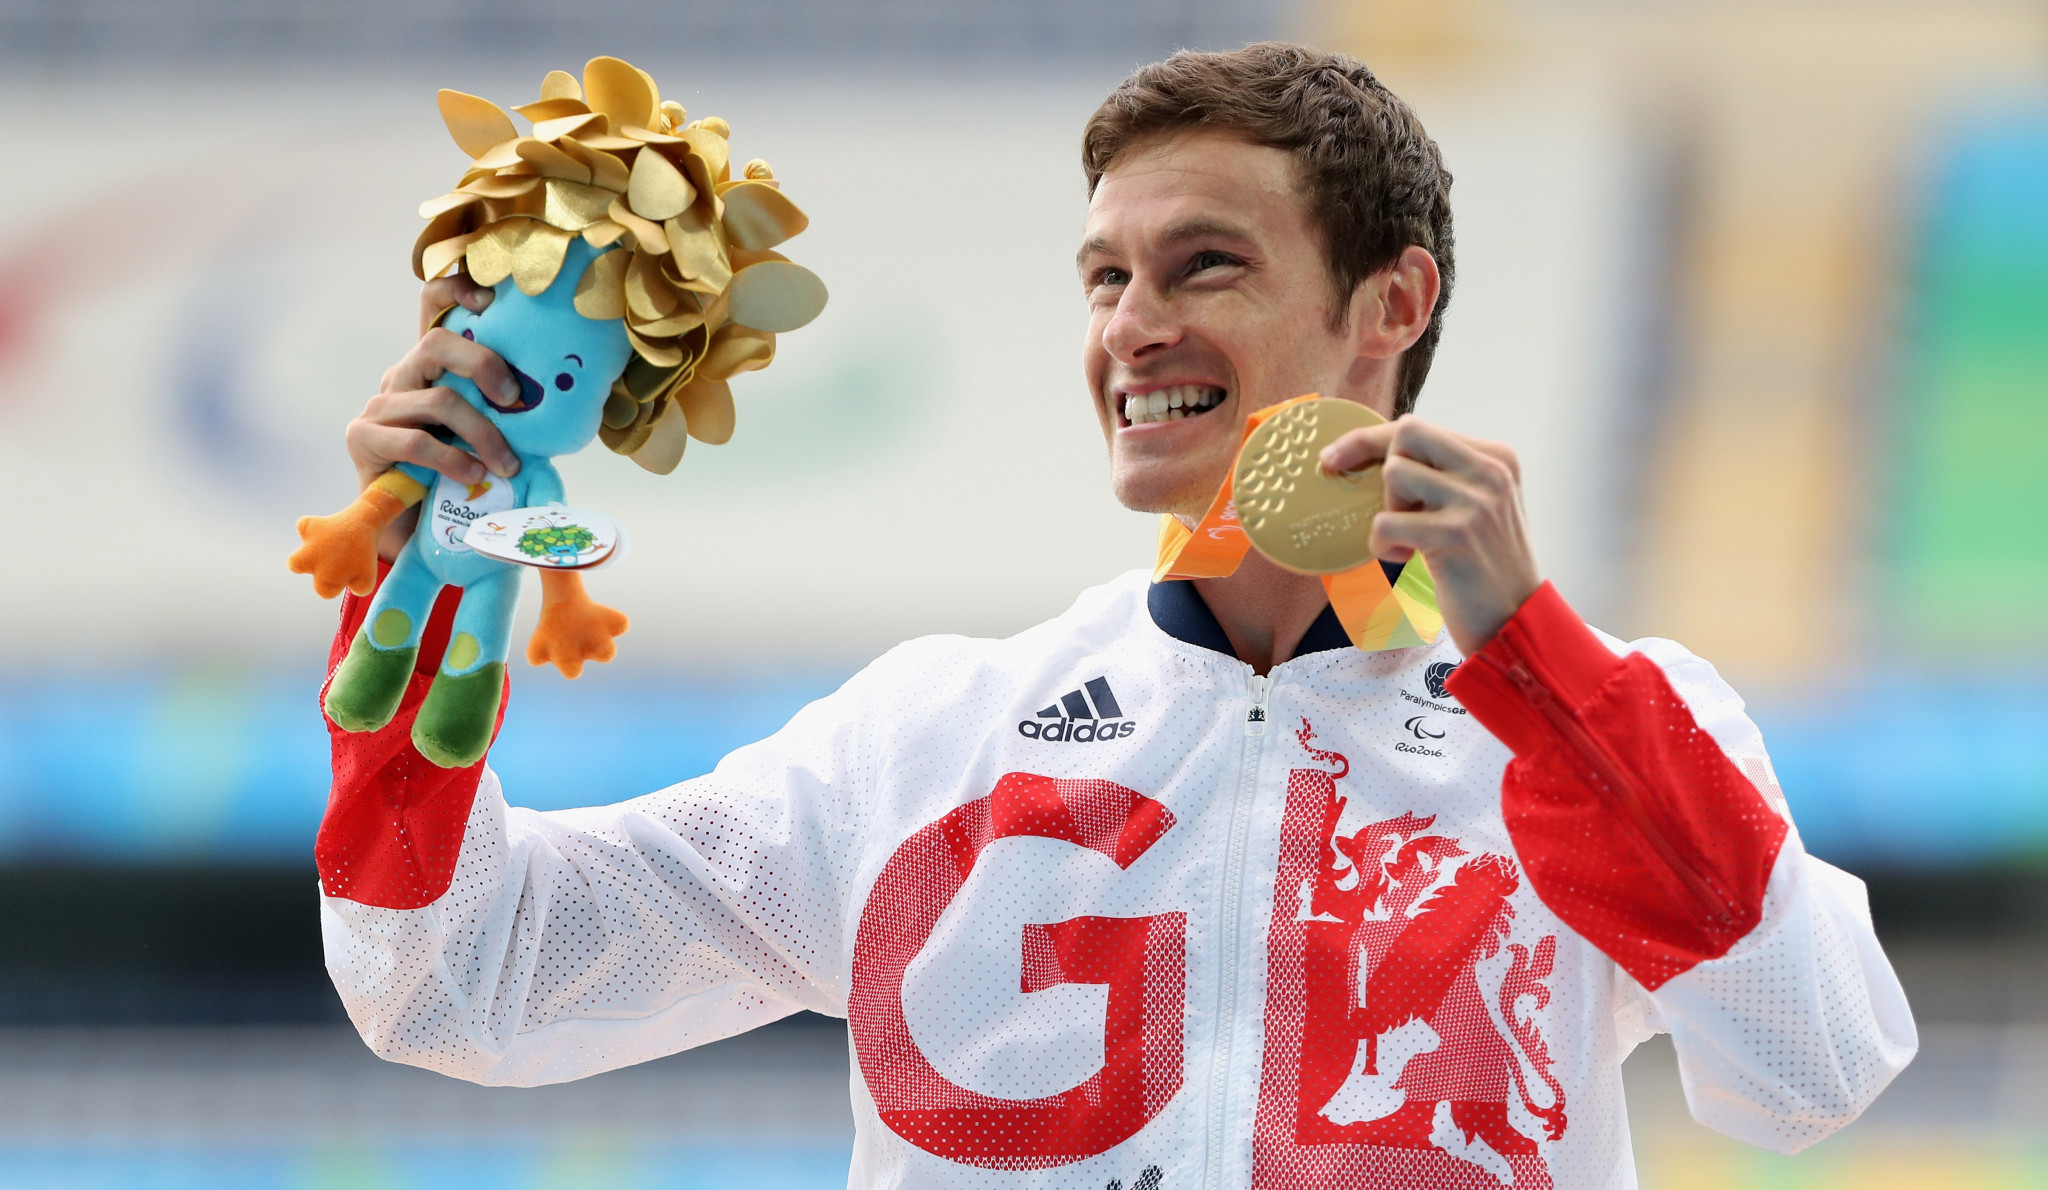 British Paralympic gold medallist announces retirement from athletics